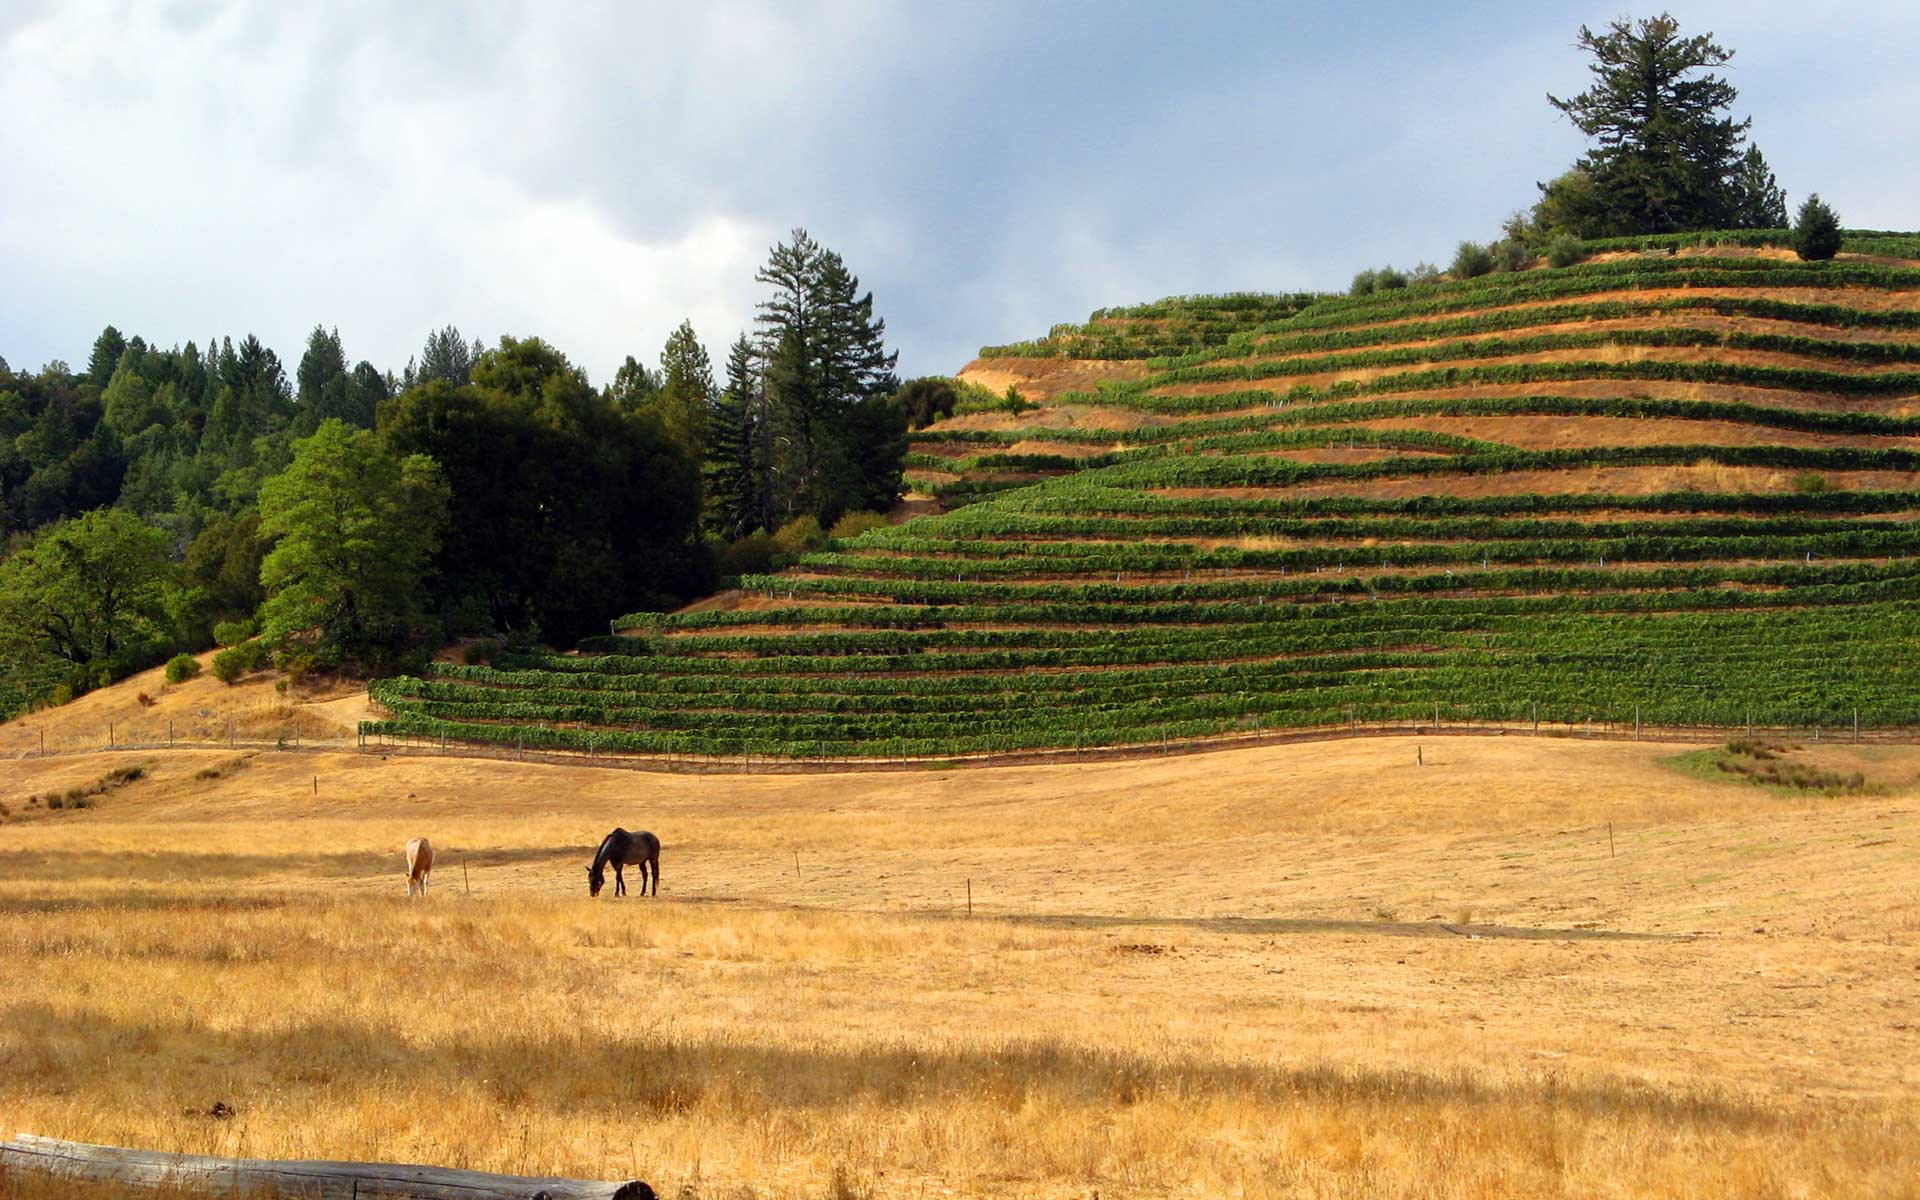 Hillsides: Terraced vinerows with horses grazing in the foreground